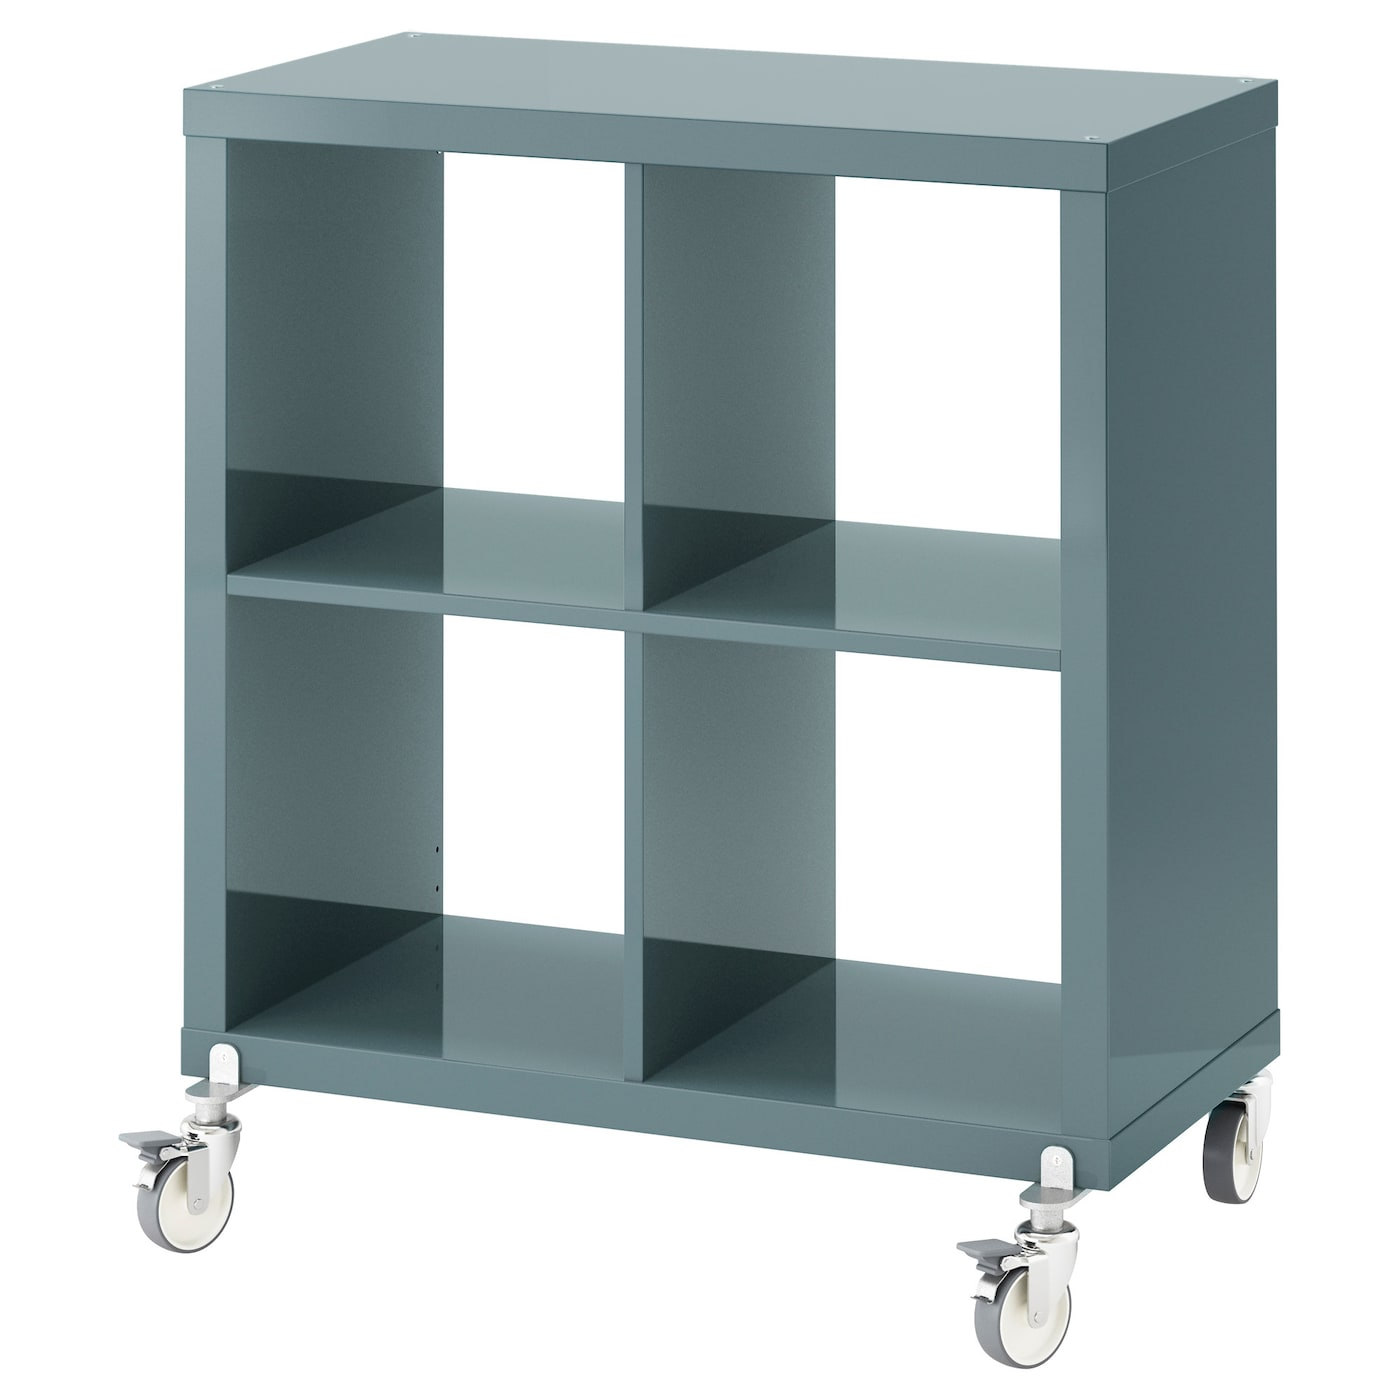 Kallax shelving unit on castors high gloss grey turquoise for Etagere 50 cm de large